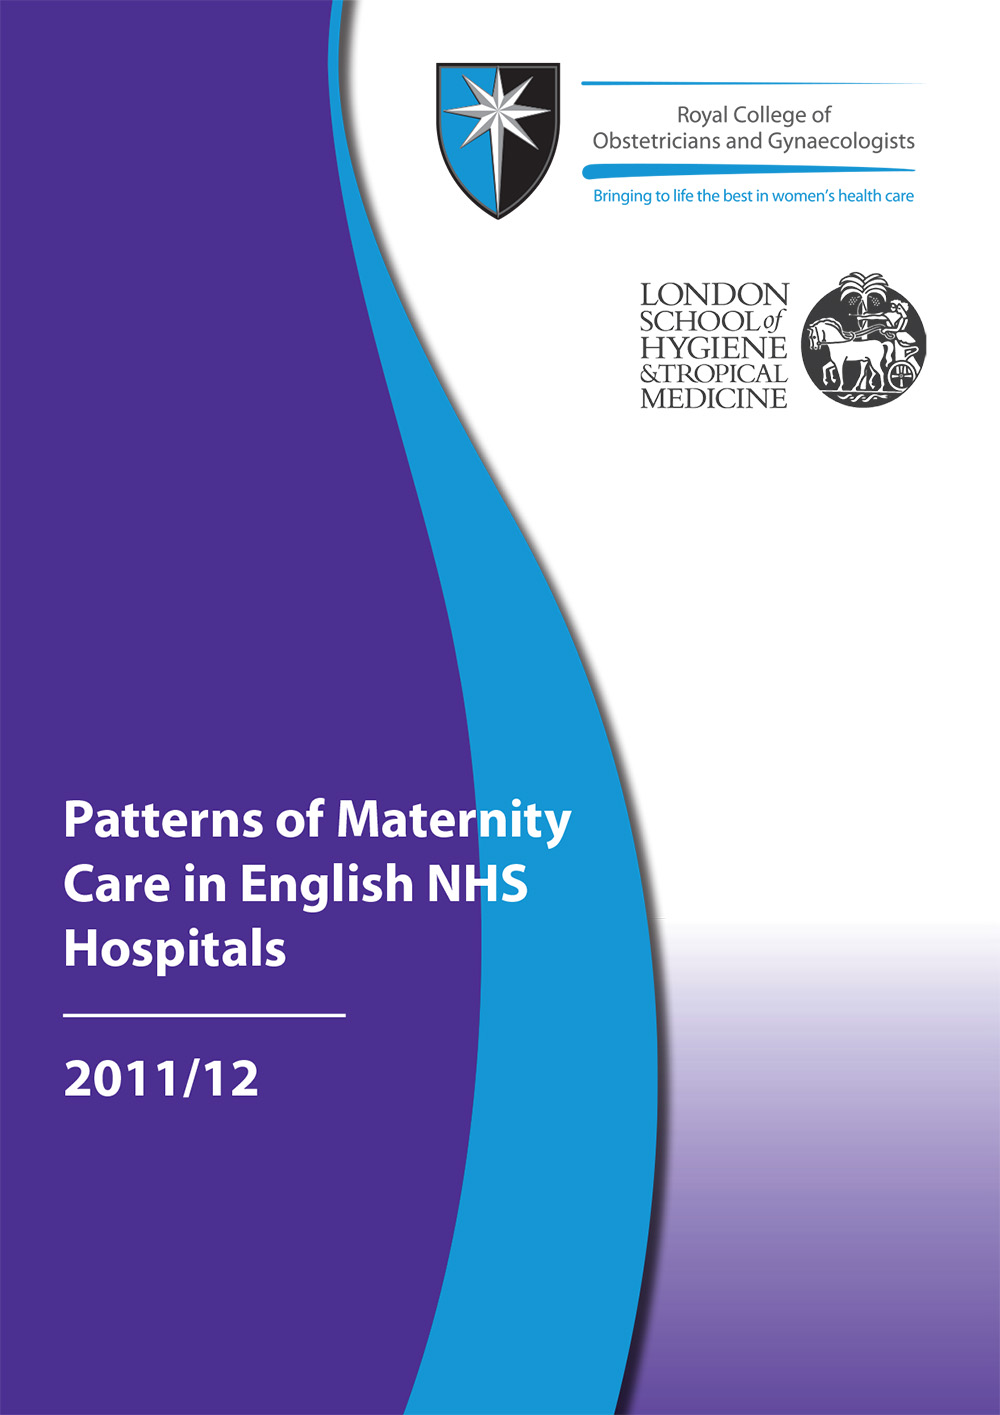 patterns of maternity care in english nhs hospitals  patterns of maternity care in english nhs hospitals 2011 12 front cover